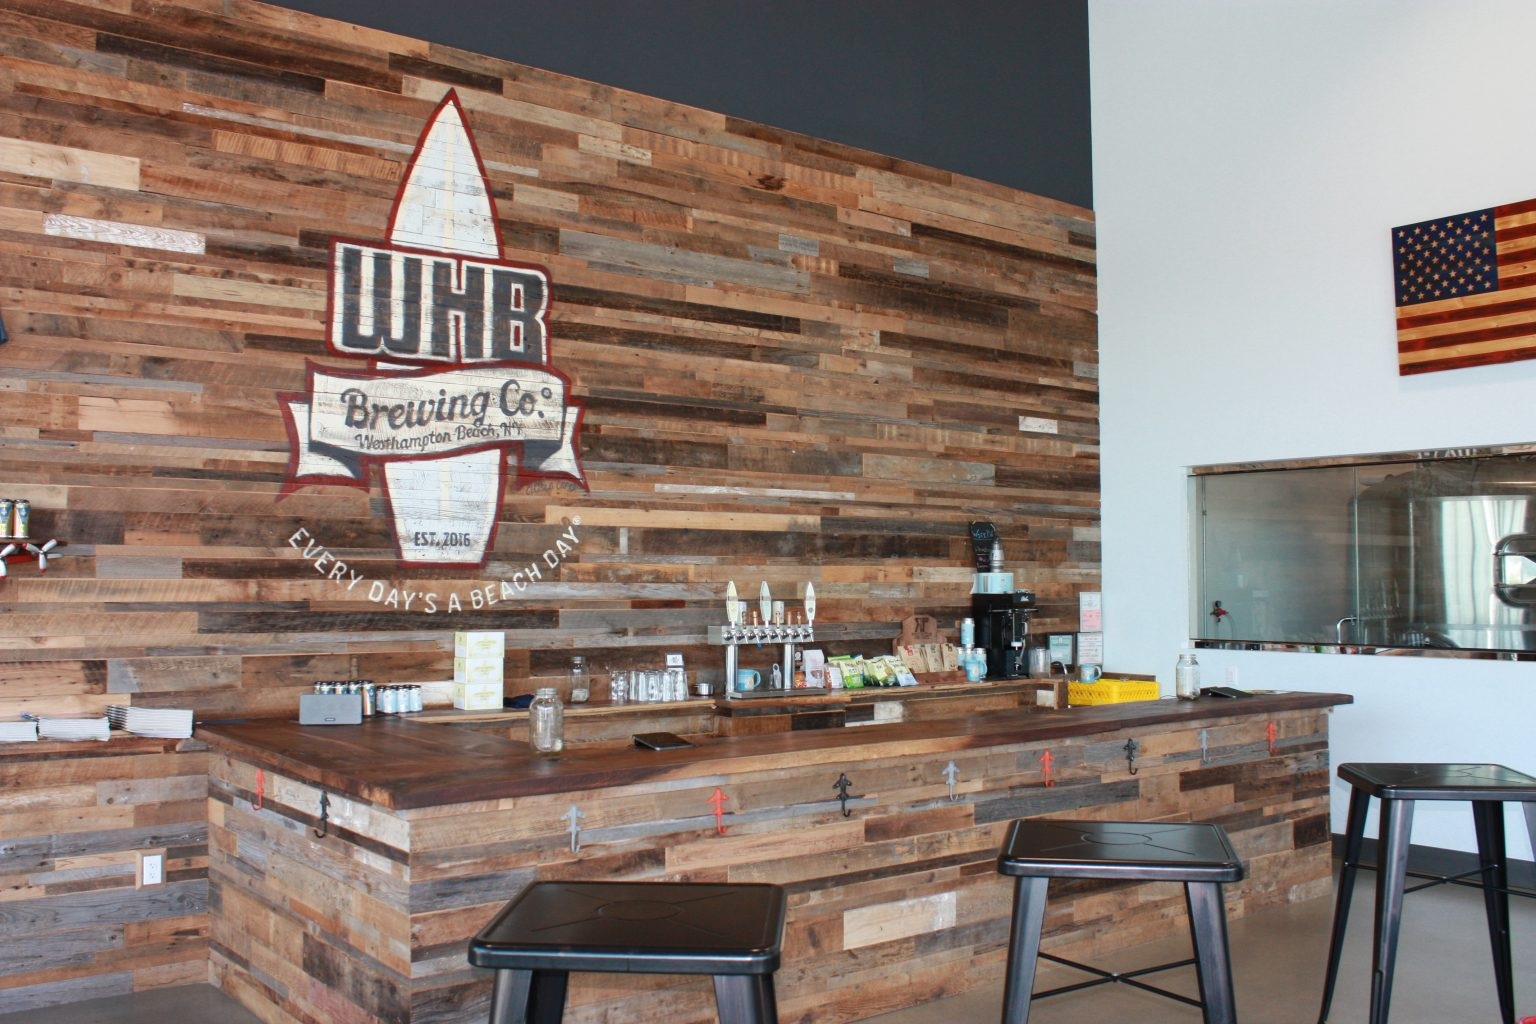 WHB Brewing co